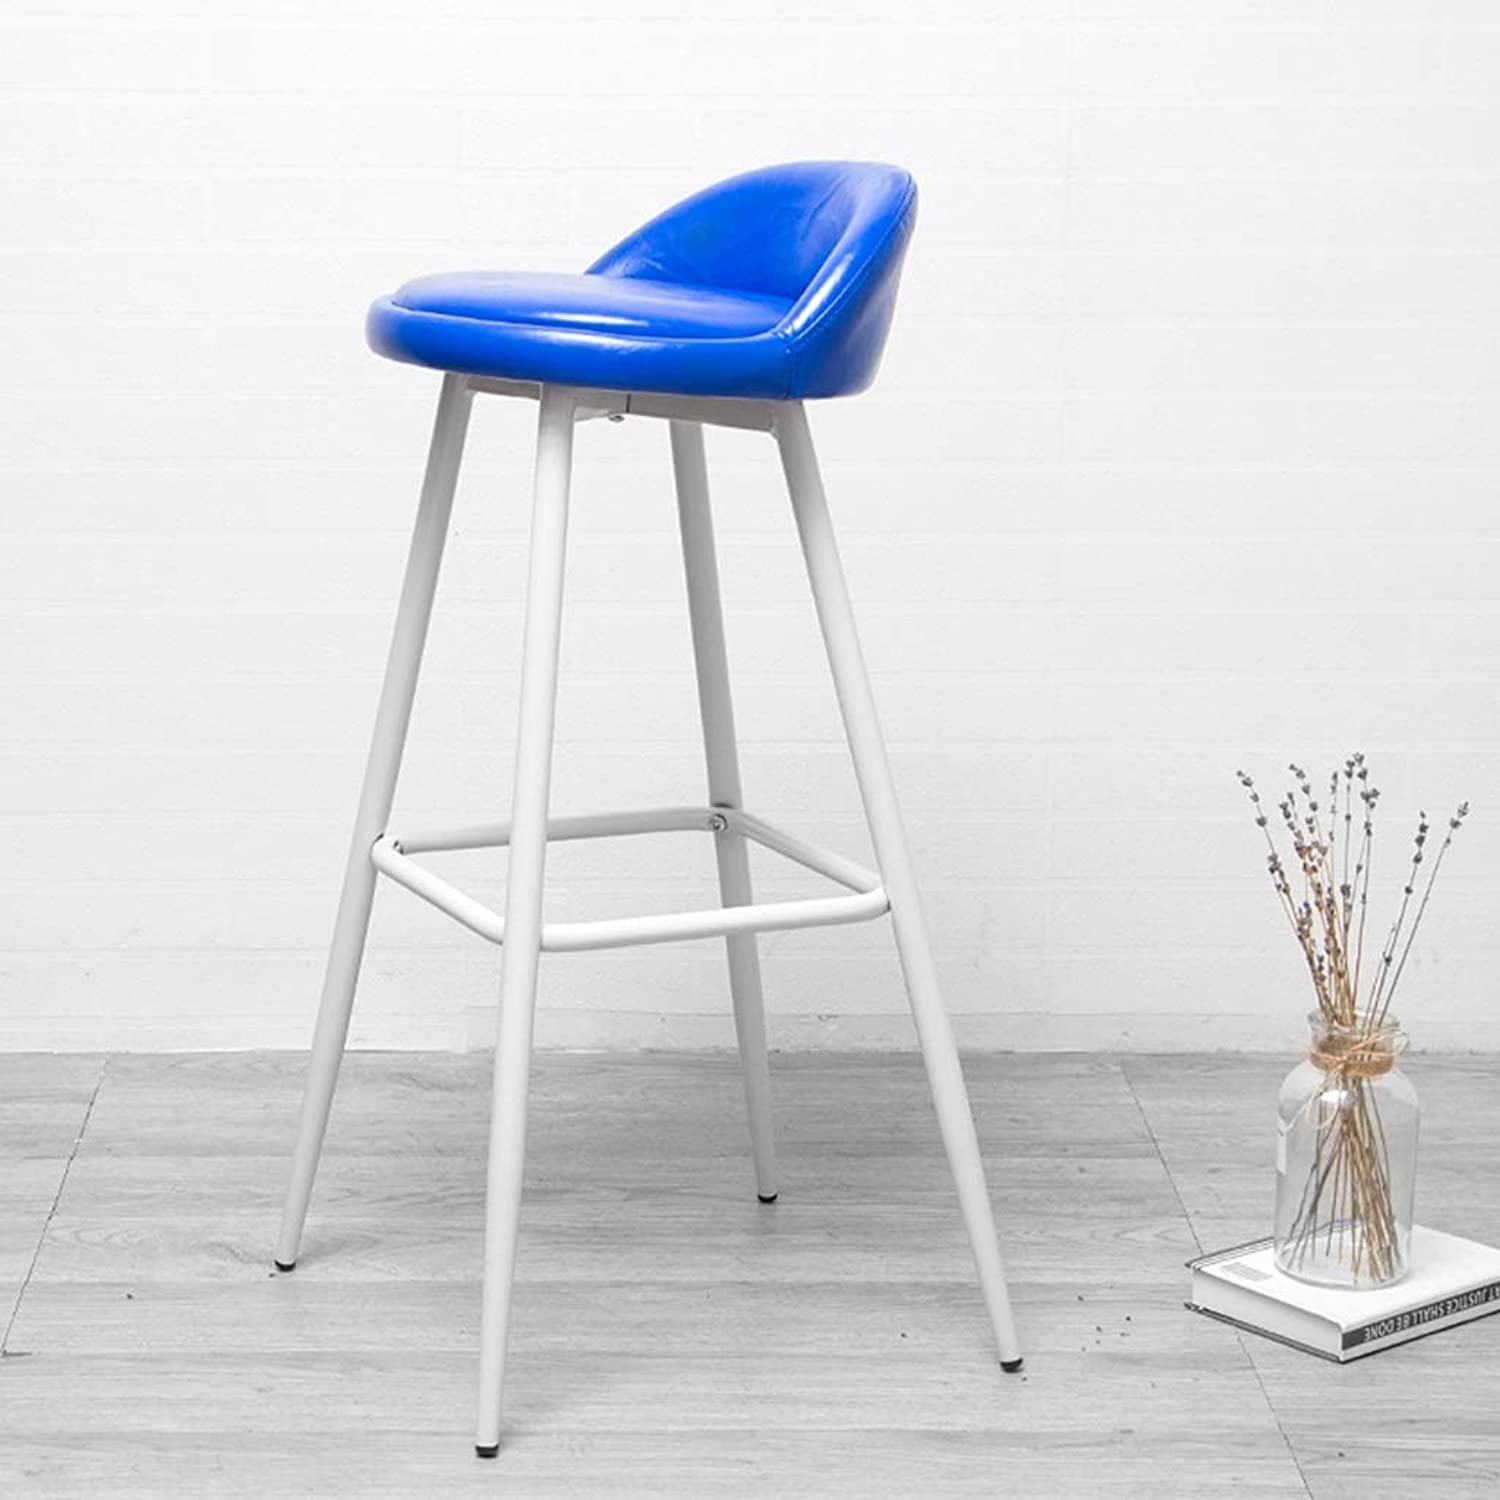 Creative Reception Bar Stool Nordic Style High Foot Chair Cafe Counter Restaurant Leather Seat Home Decoration 0525A (color   G)